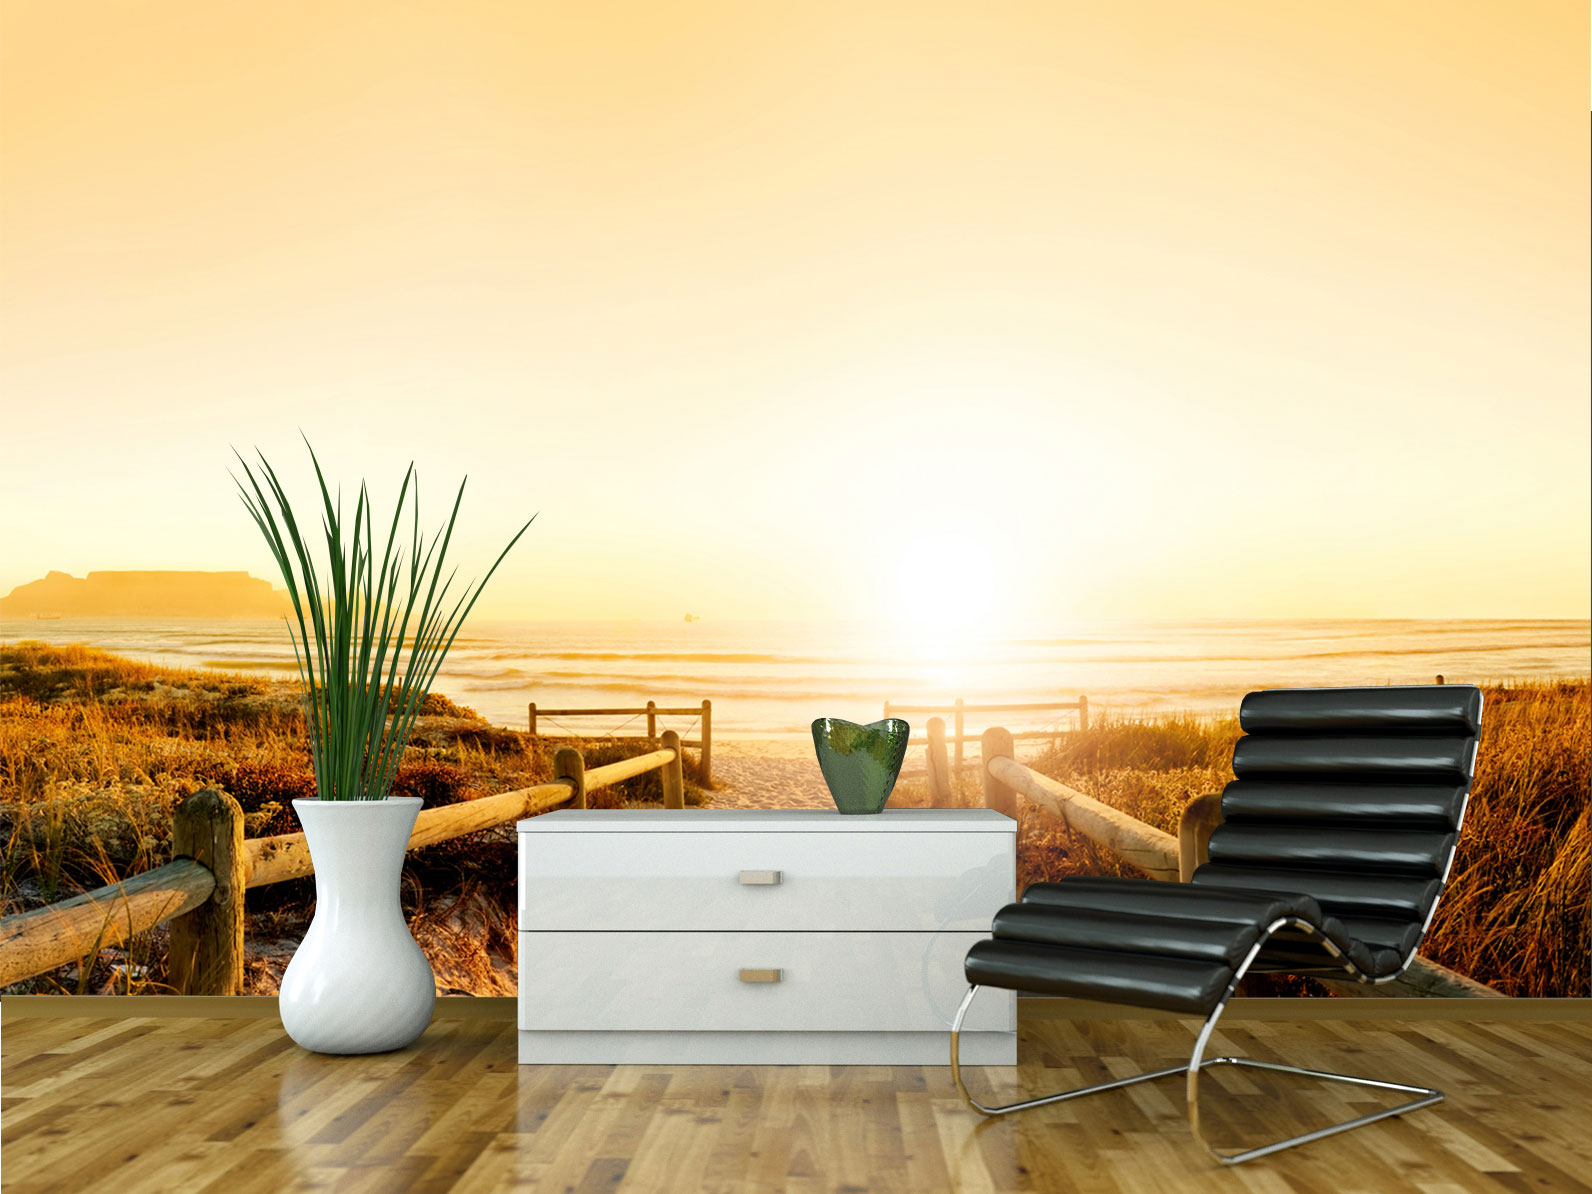 wandmotiv24 fototapete sonnenuntergang ozean natur tapete kunstdruck wandbild xxl 400 x 280 cm. Black Bedroom Furniture Sets. Home Design Ideas